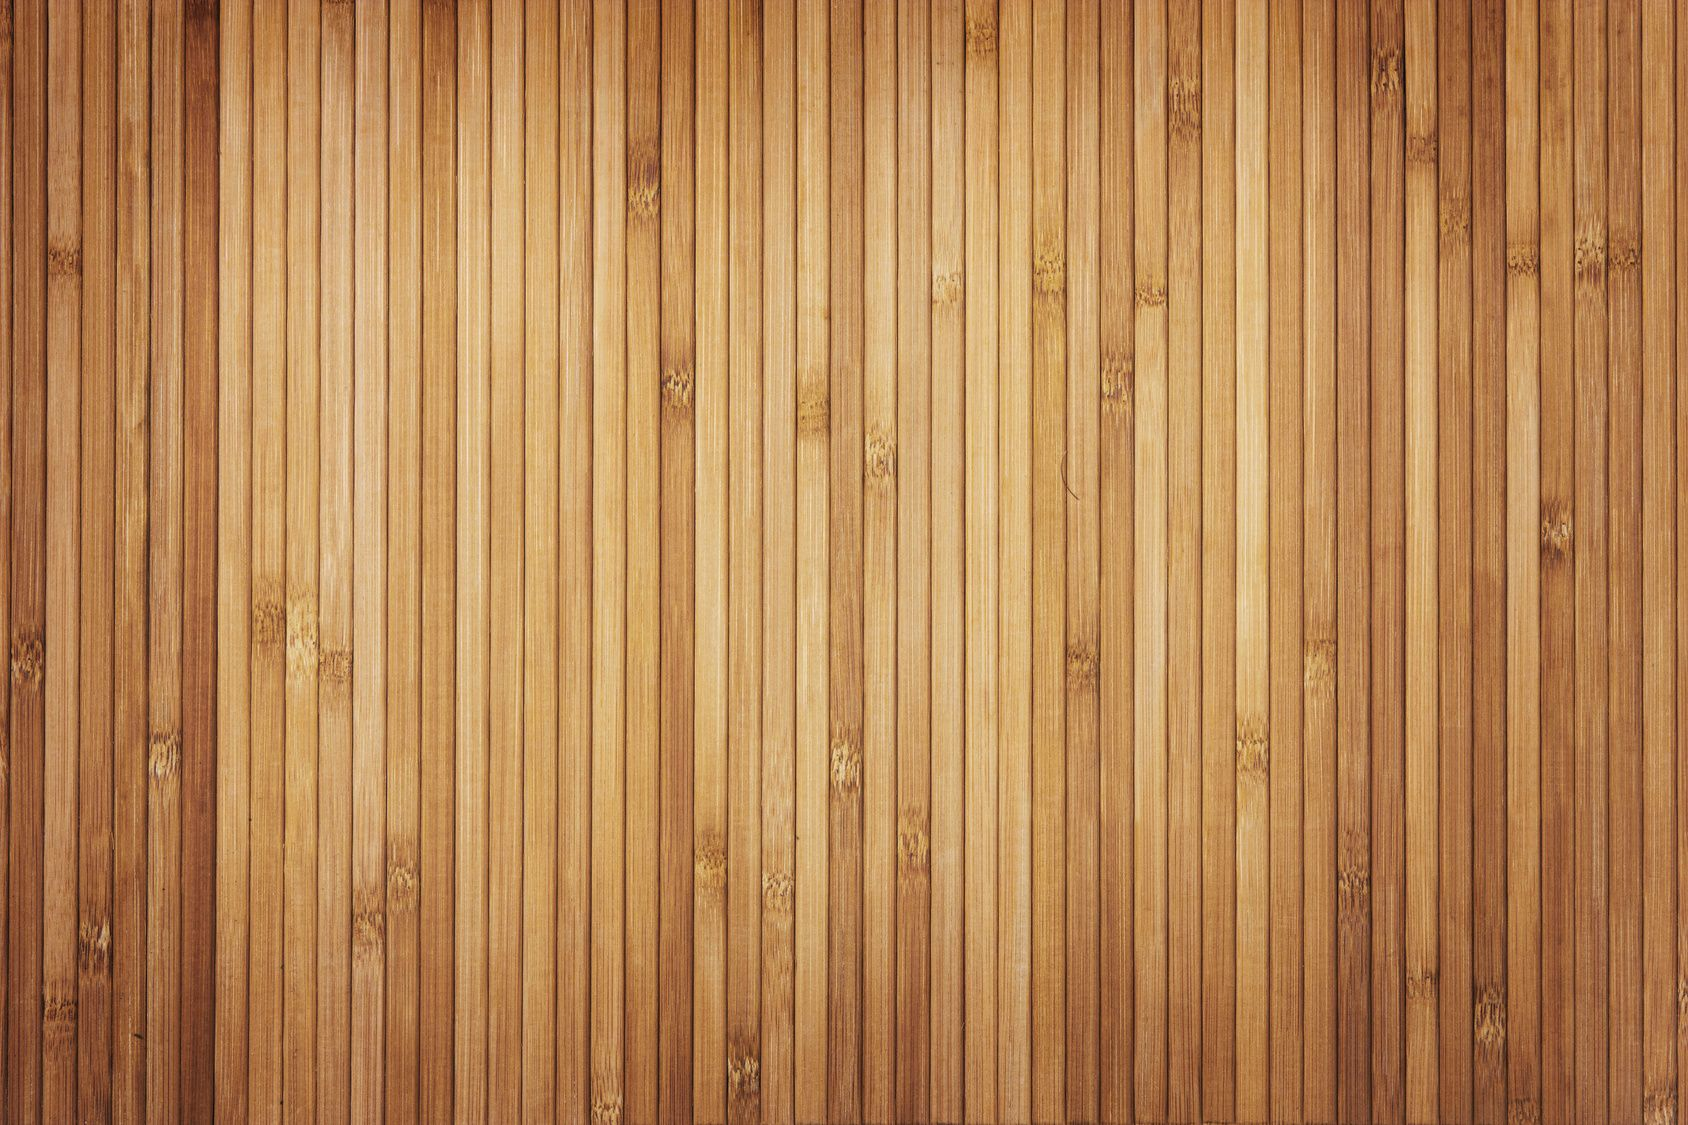 Free Wood Textures 20 High Quality Fresh Textures Wood